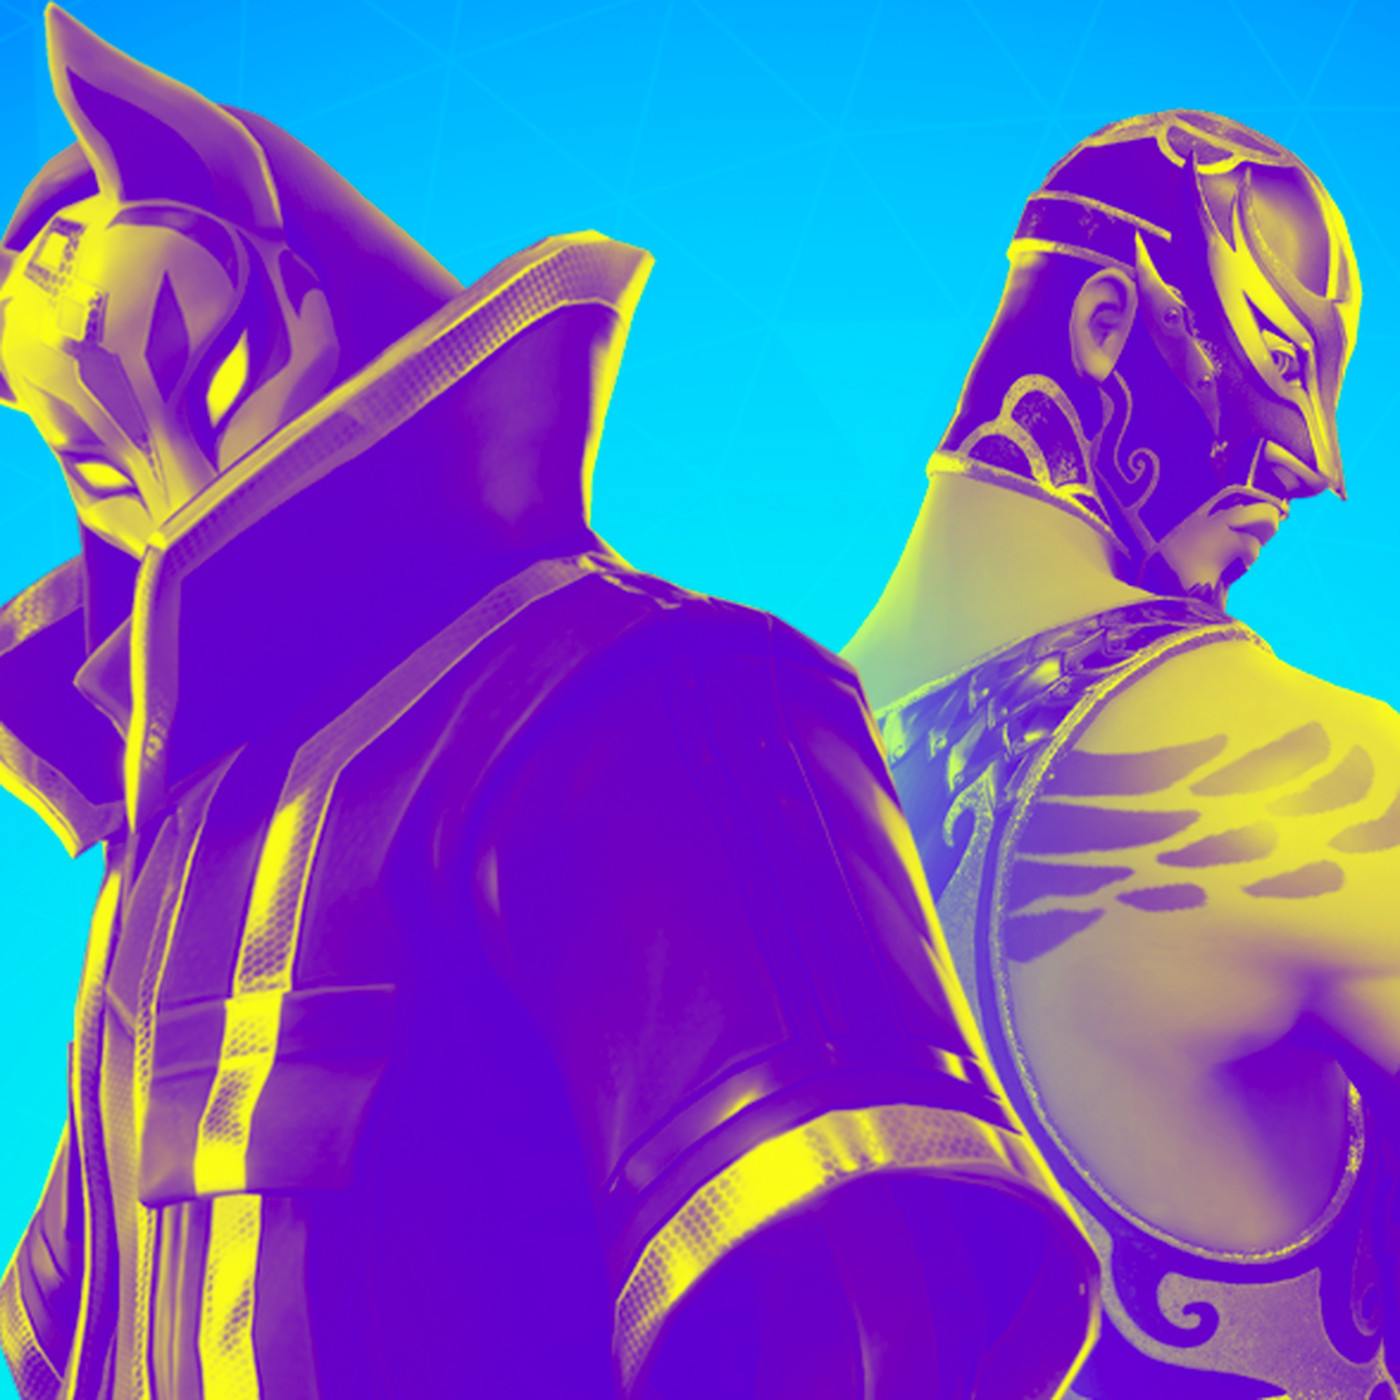 Fortnite's new tournaments let anyone compete against pros